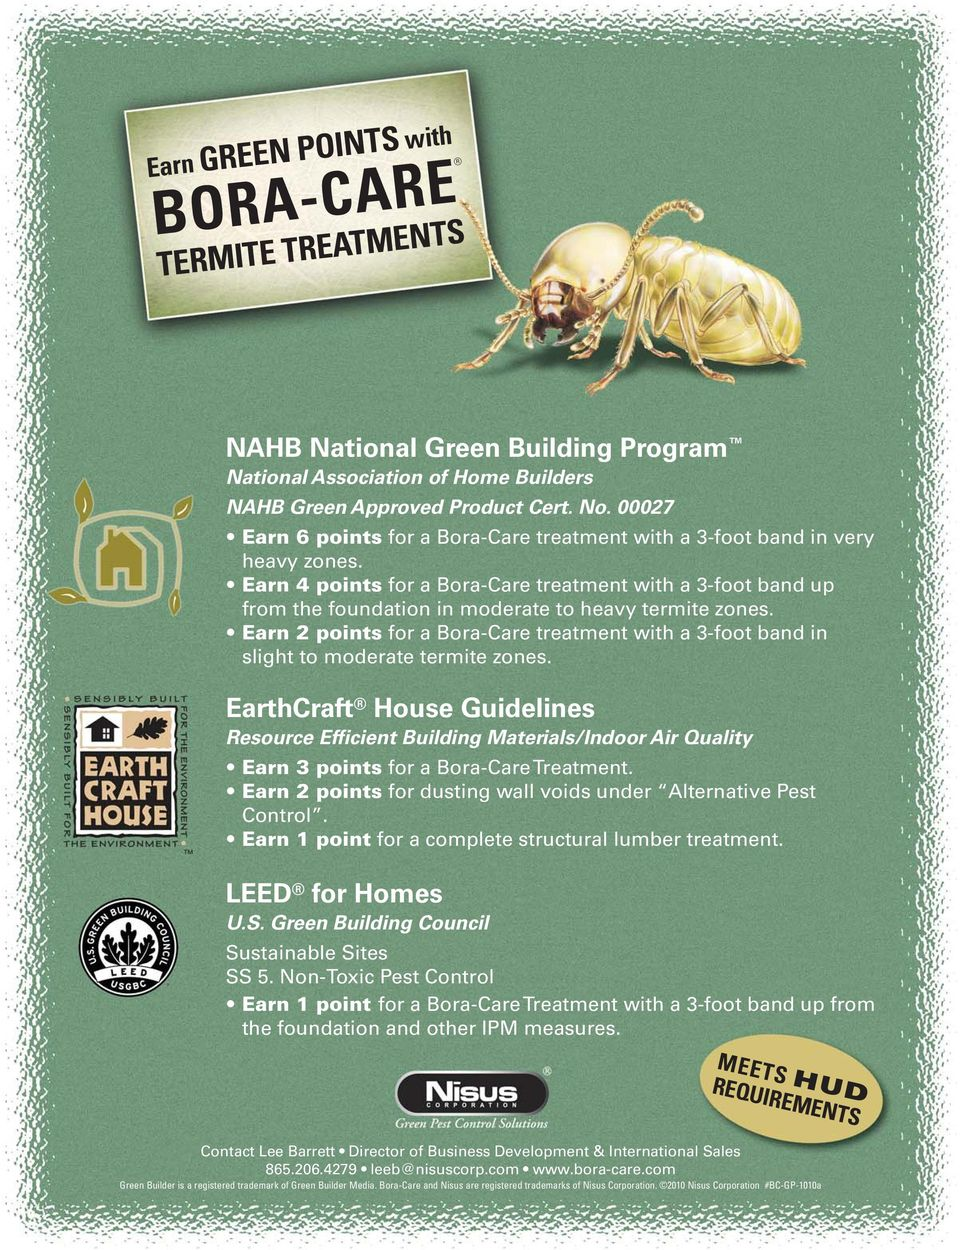 Earn 4 points for a Bora-Care treatment with a 3-foot band up from the foundation in moderate to heavy termite zones.